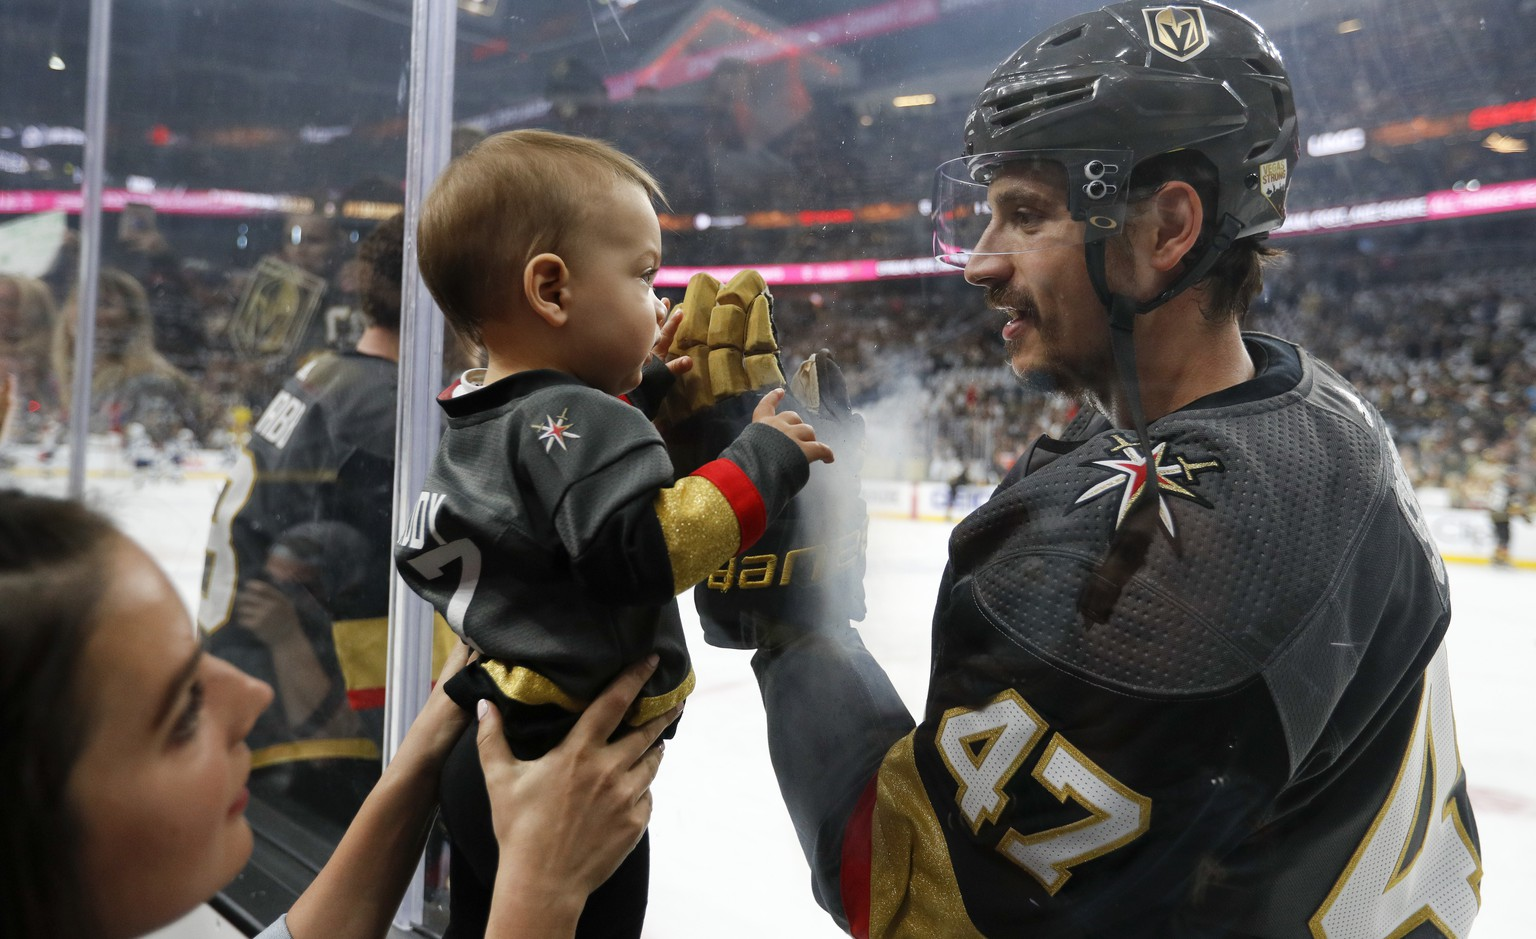 Vegas Golden Knights defenseman Luca Sbisa greets a young fan before Game 4 of the team's NHL hockey Western Conference finals against the Winnipeg Jets, Friday, May 18, 2018, in Las Vegas. (AP Photo/John Locher)